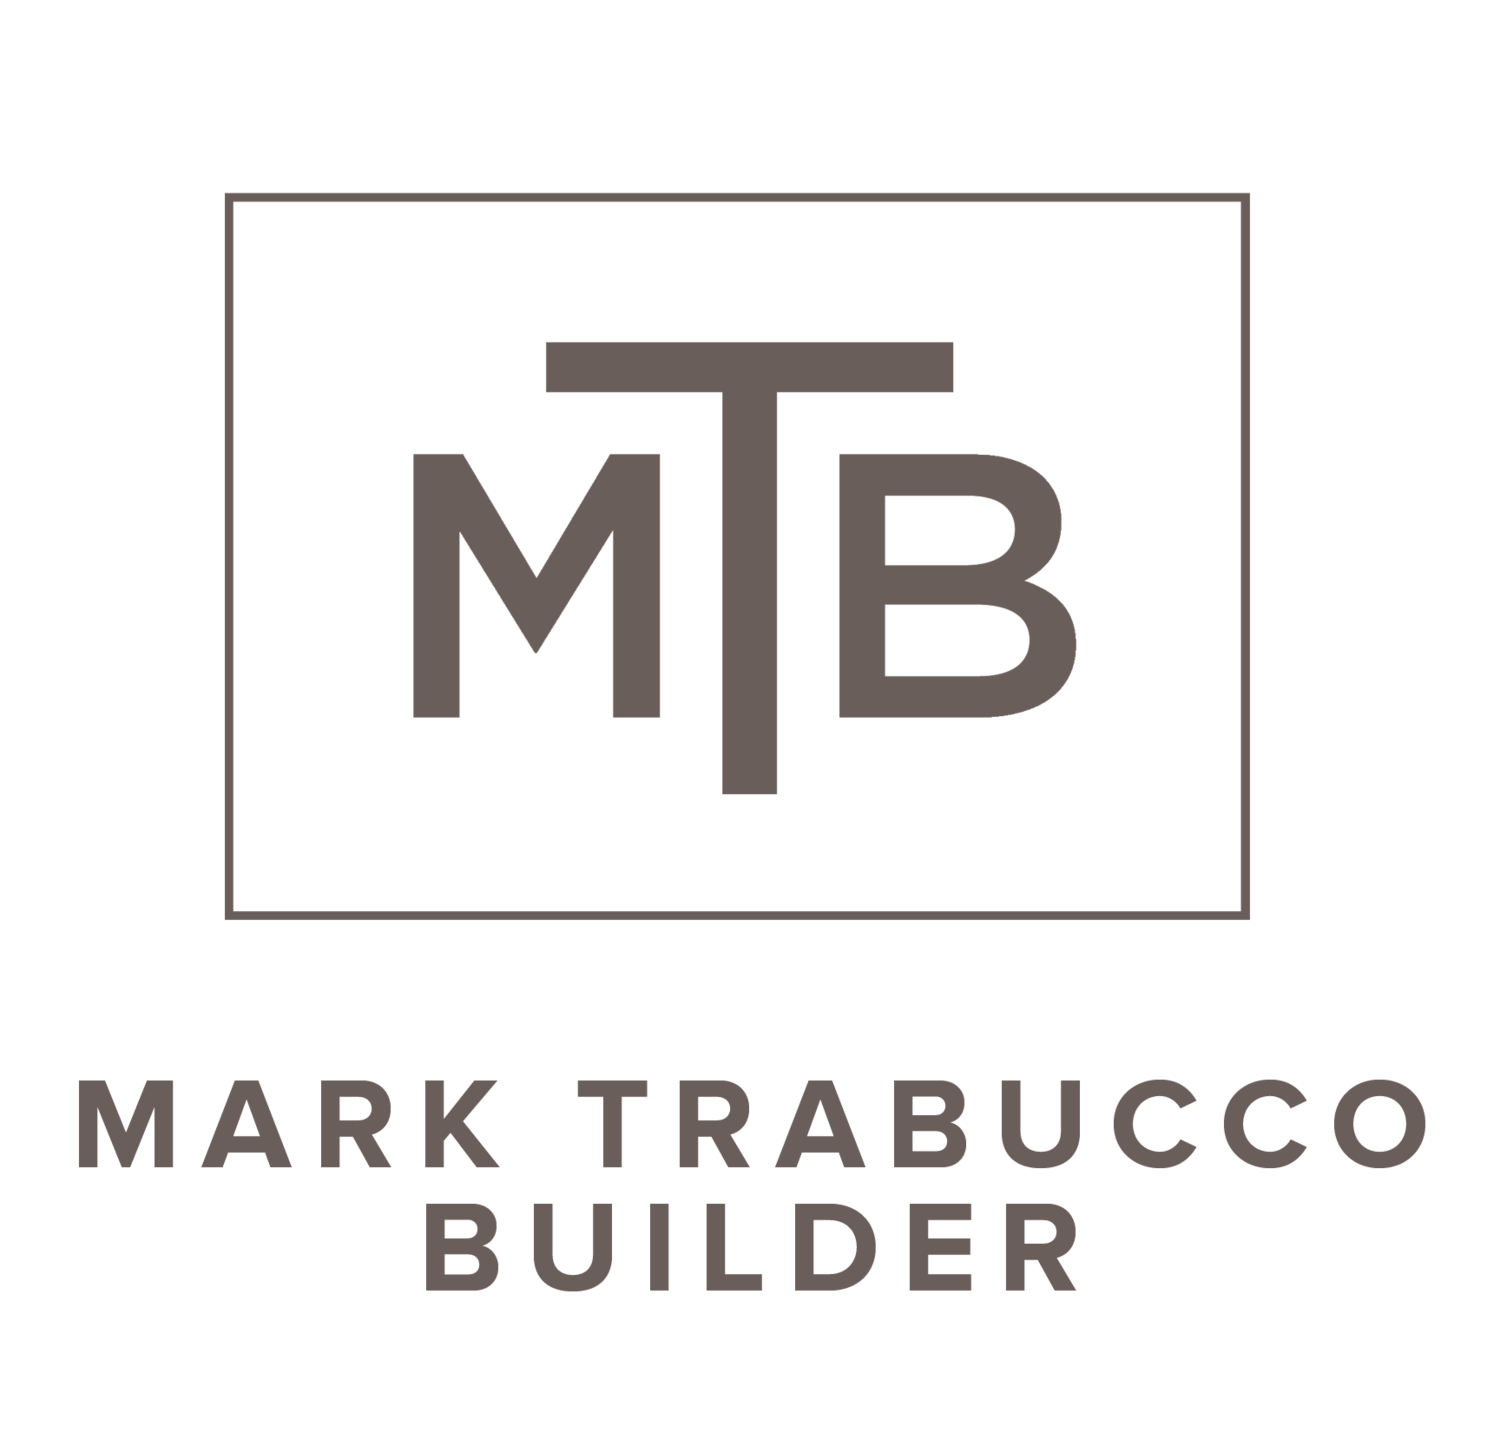 Mark Trabucco Builder